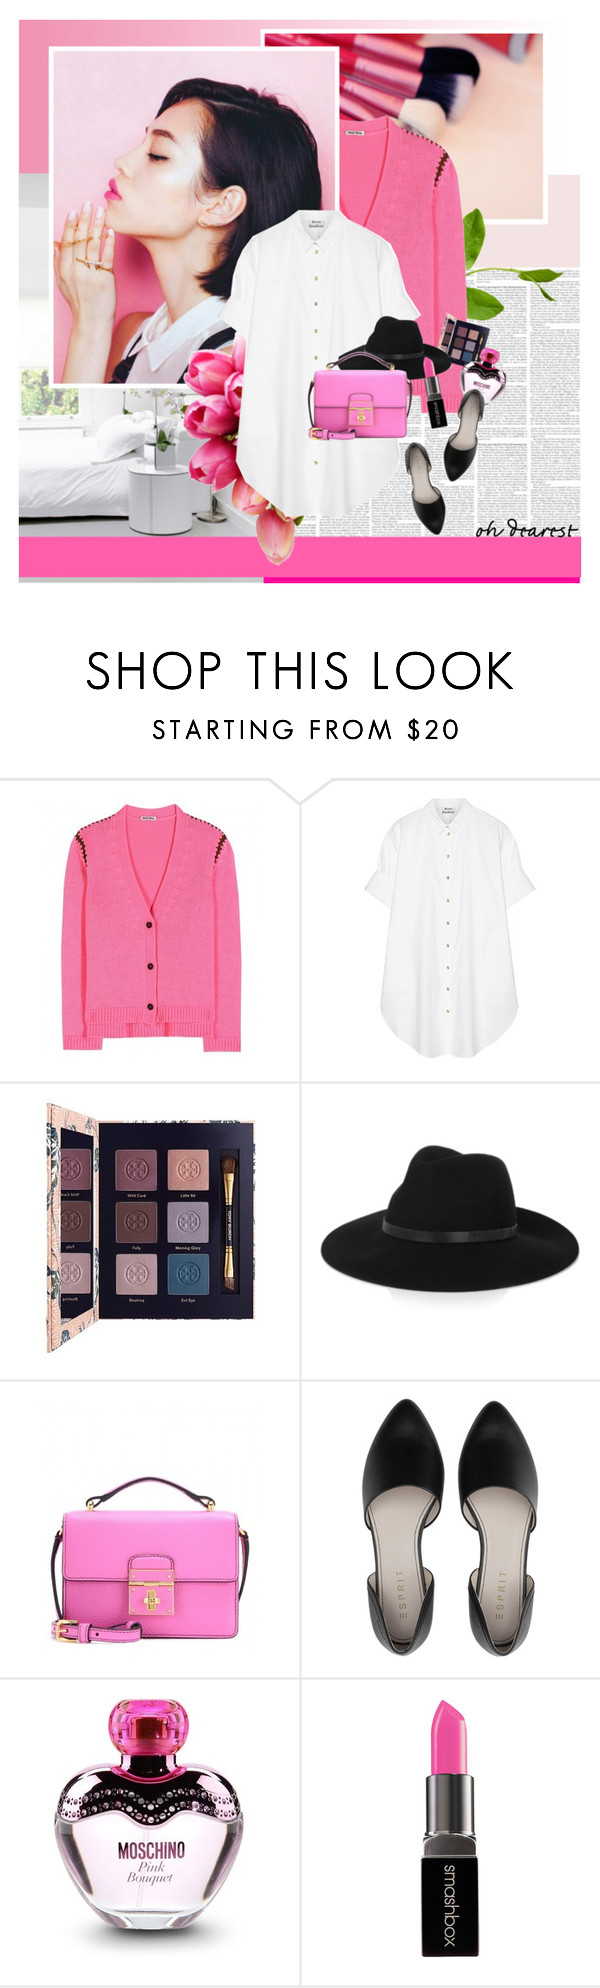 """Pink Lover"" by stephaniee90 ❤ liked on Polyvore featuring Miu Miu, Reception, Acne Studios, Tory Burch, By Malene Birger, Dolce&Gabbana, Moschino and Smashbox"